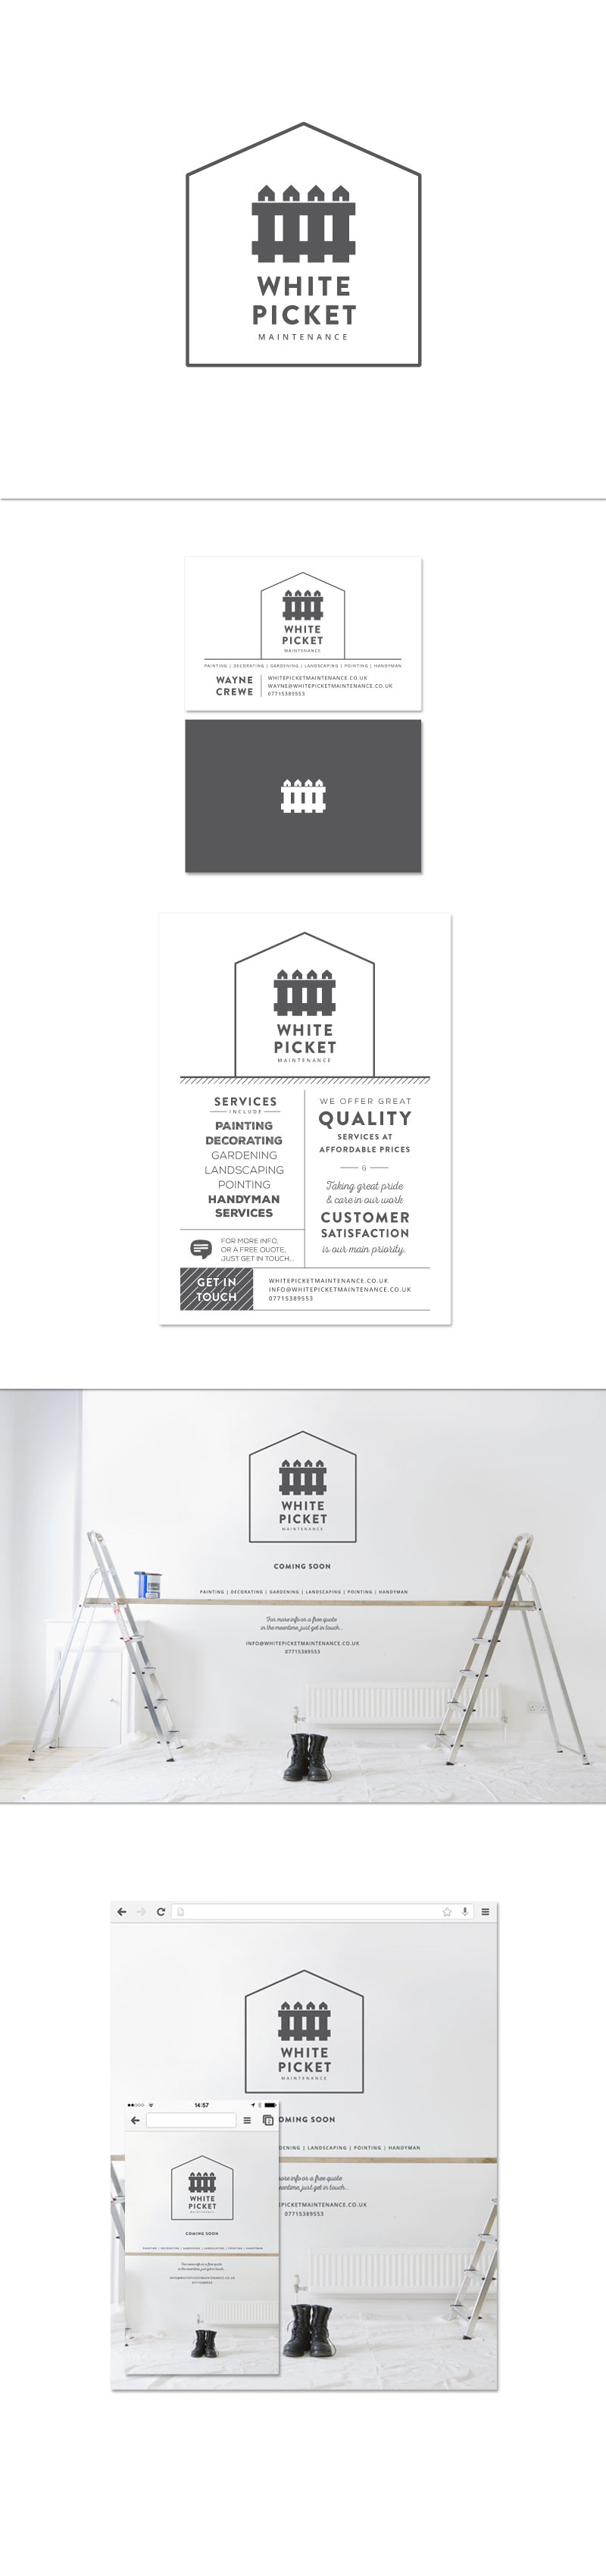 White Picket Maintenance, identity design overview image, showing logo, business card and flyer designs, along with the website screenshots.